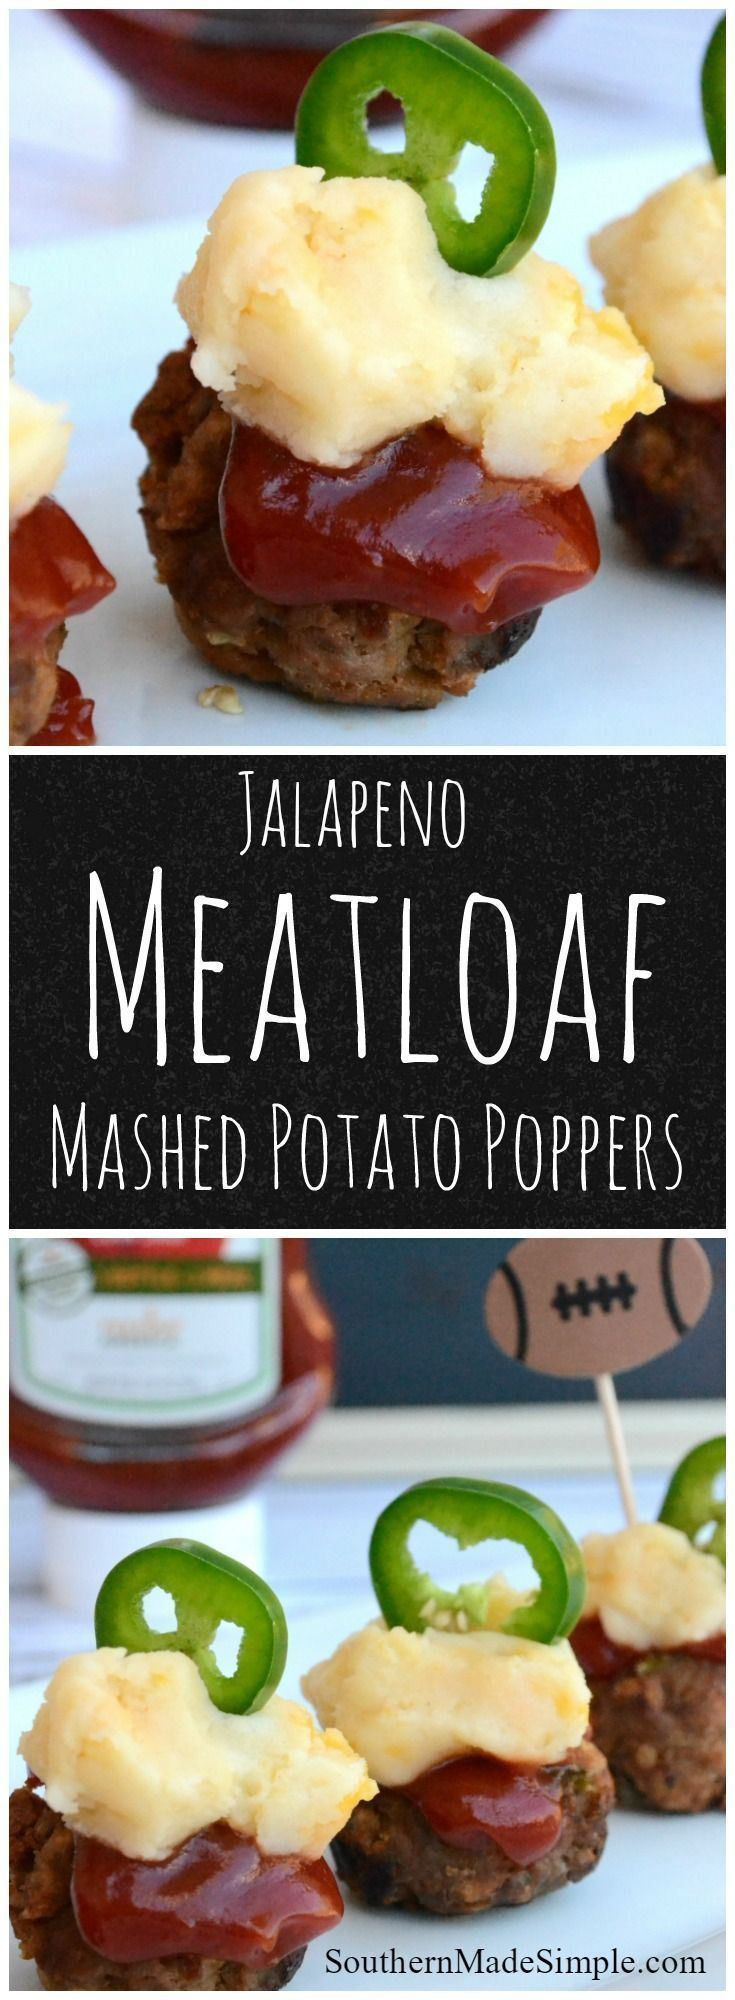 Are you getting ready for the Big Game? Try these Mini Jalapeno Meatloaf & Mashed Potato Poppers! They're sure to be the MVP on everyone's dinner plate! #KetchupWithFrenchs #ad